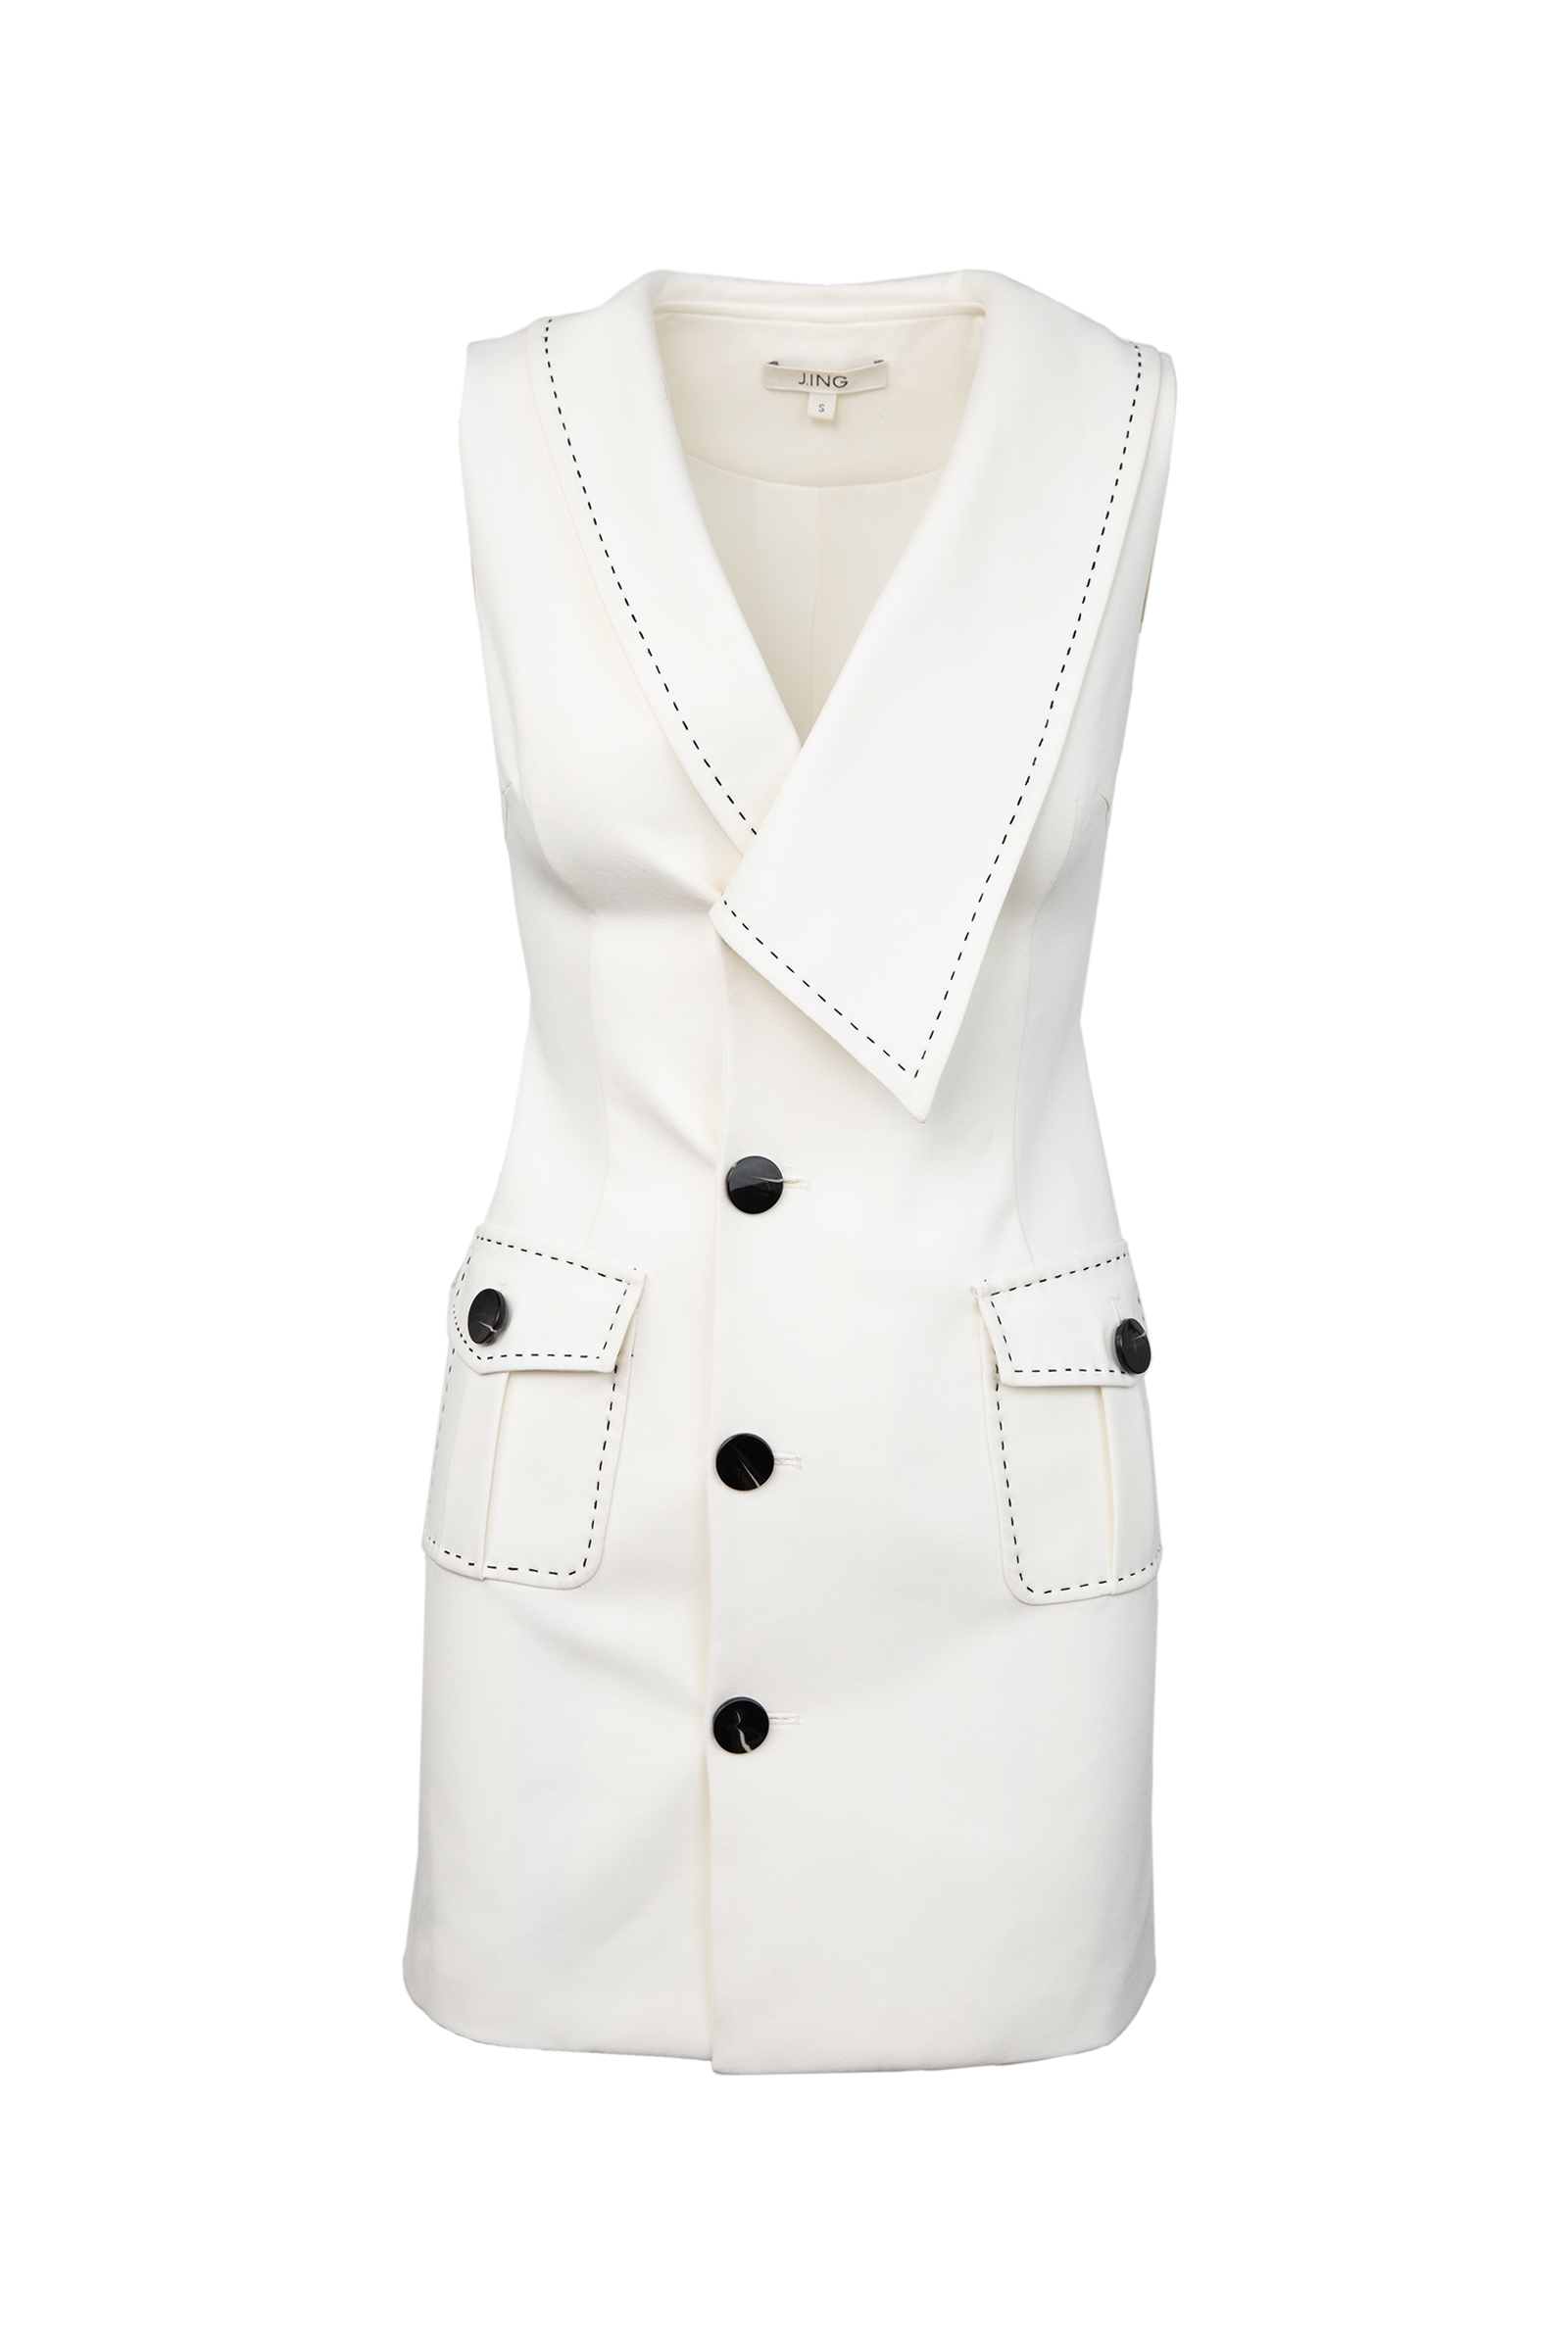 White Sailor Dress by J.ING women's fashion clothing in LA